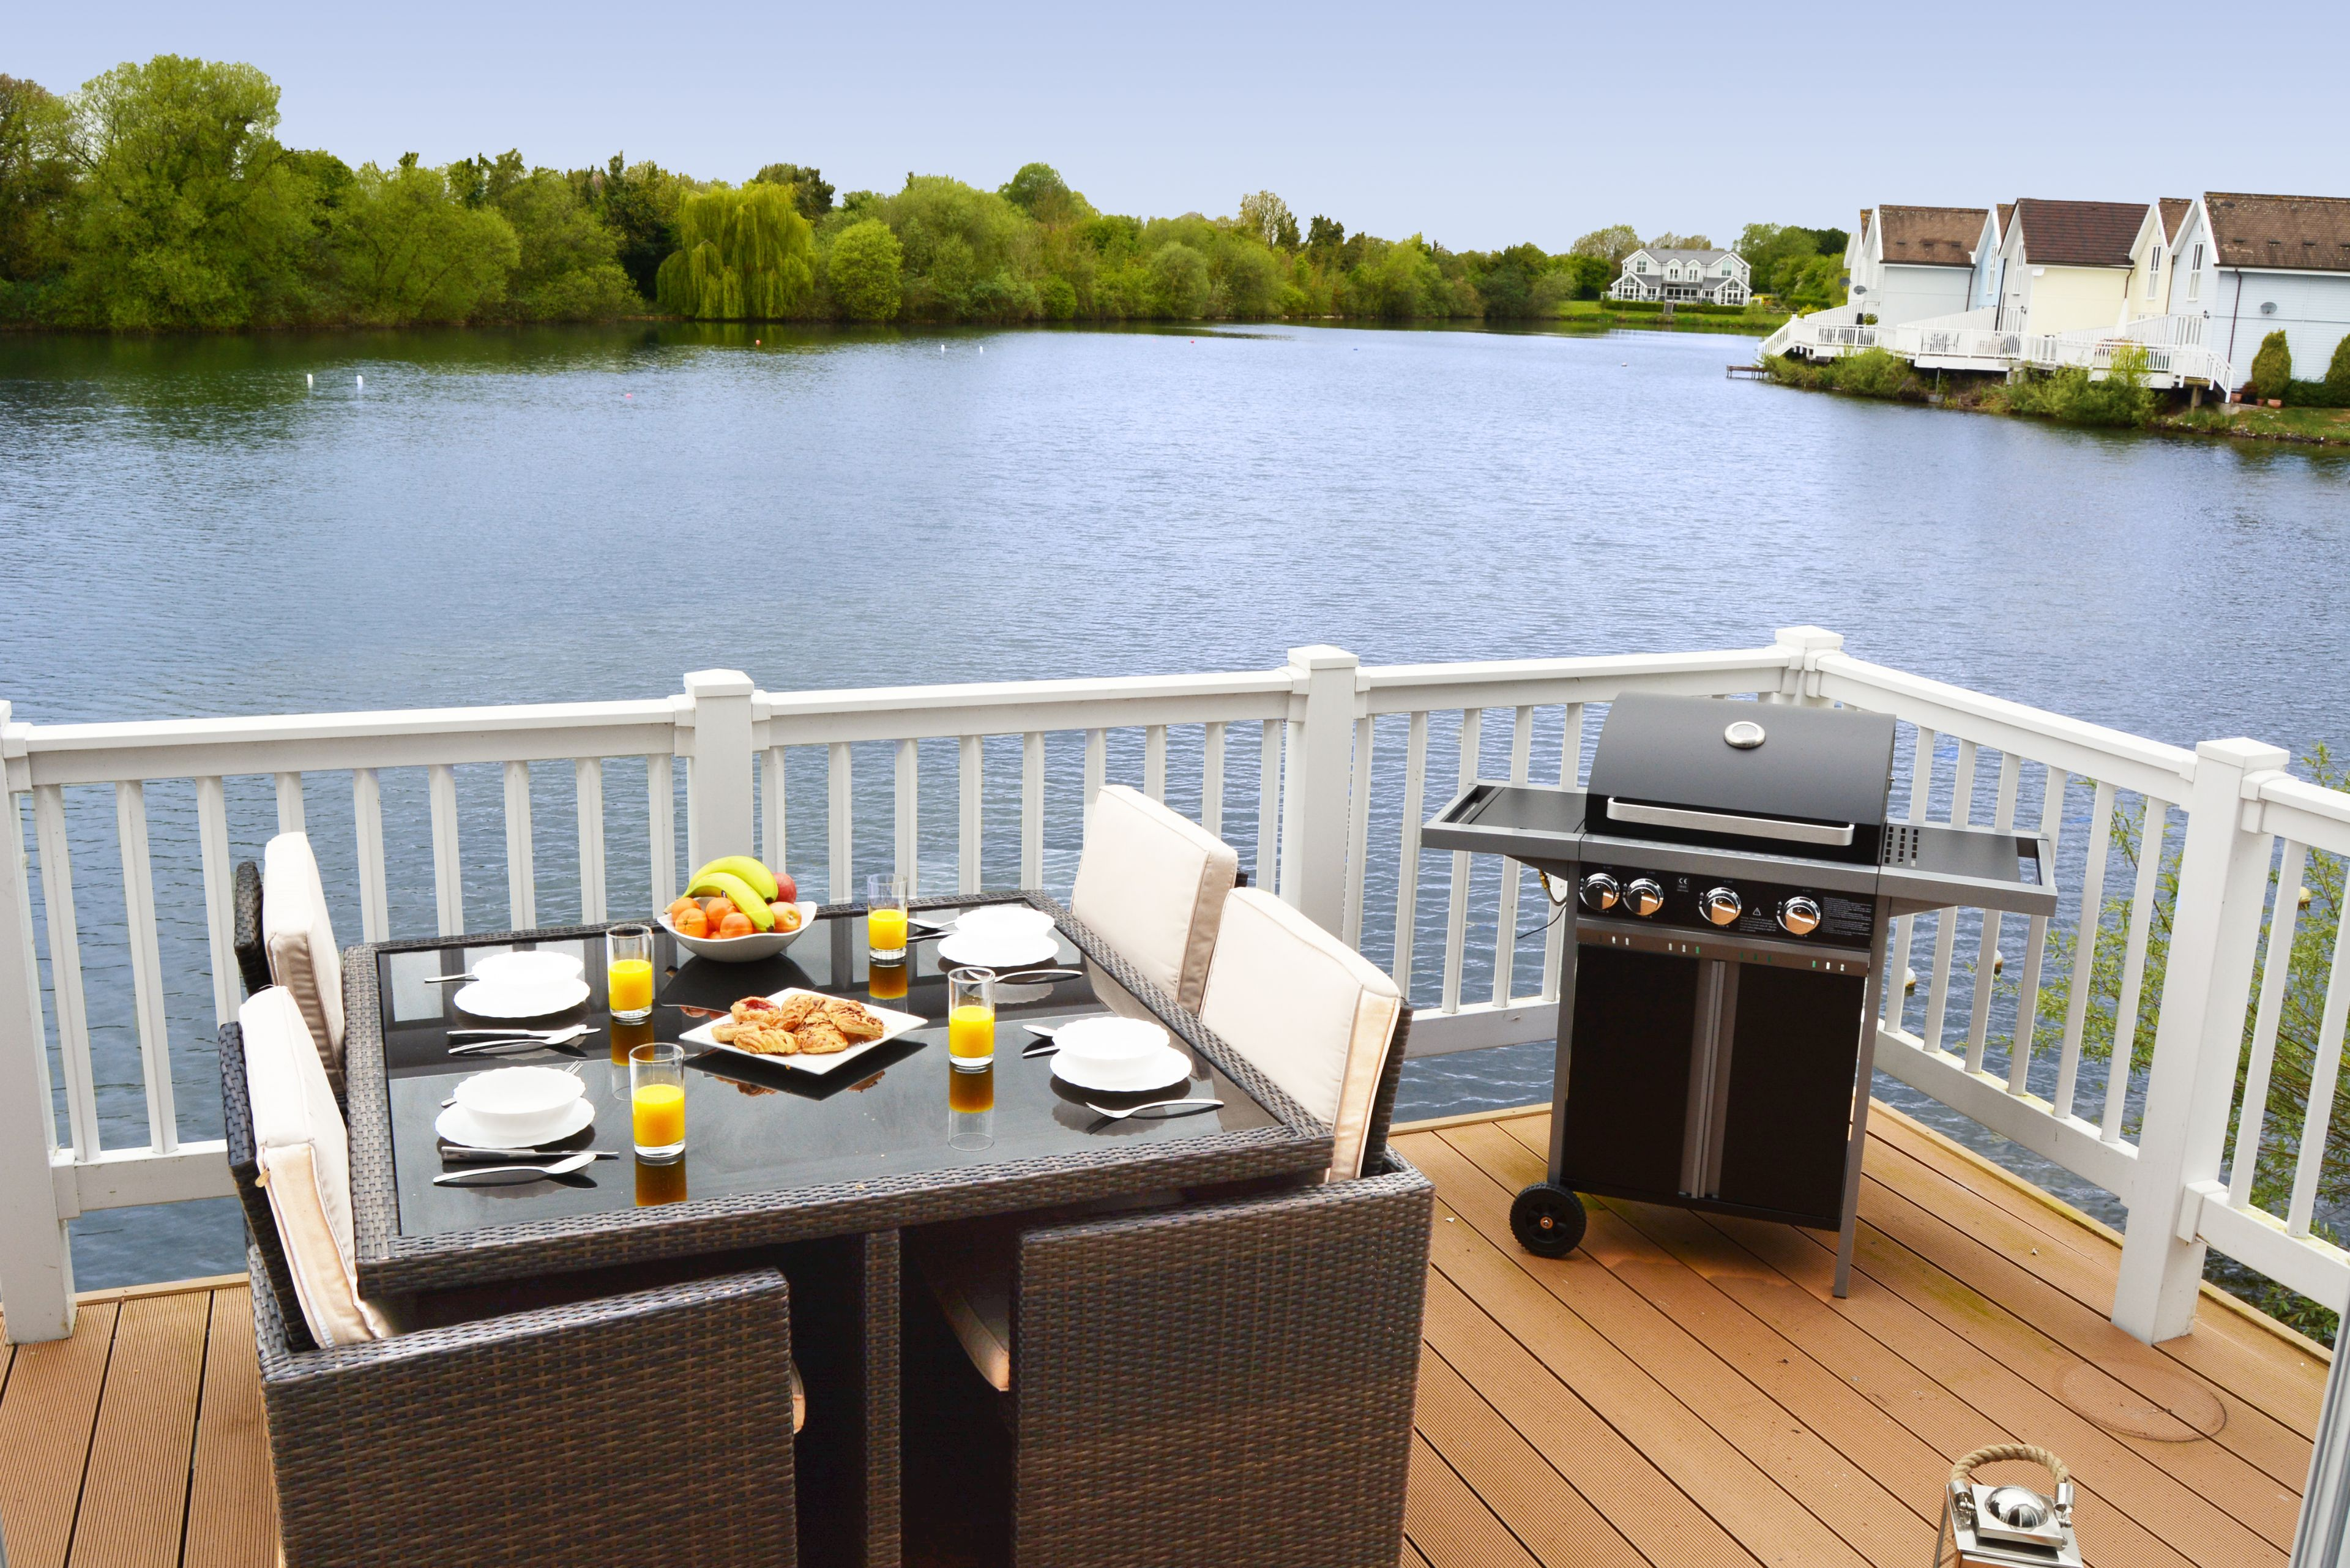 Your private secure deck is the perfect spot for sizzling steaks on the barbecue